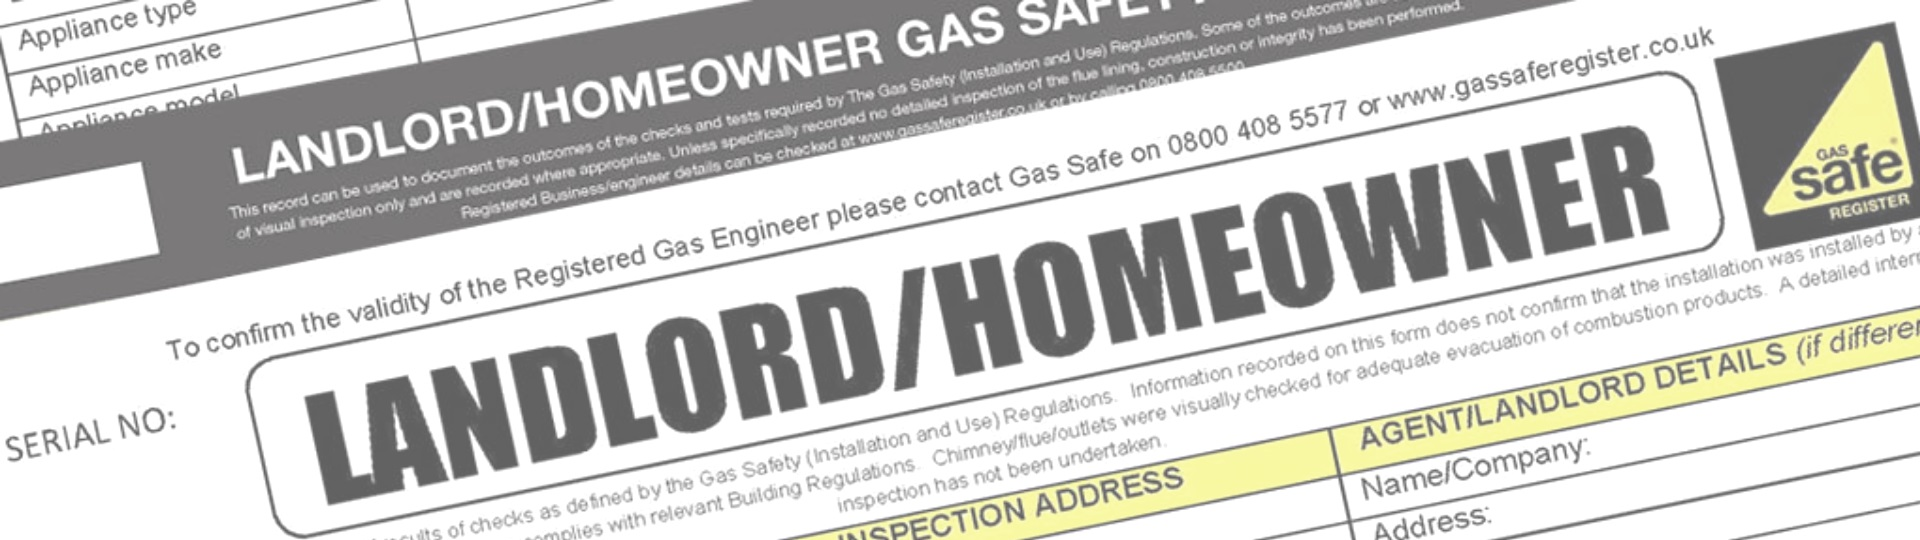 Gas Saftey Certificates Bedminster